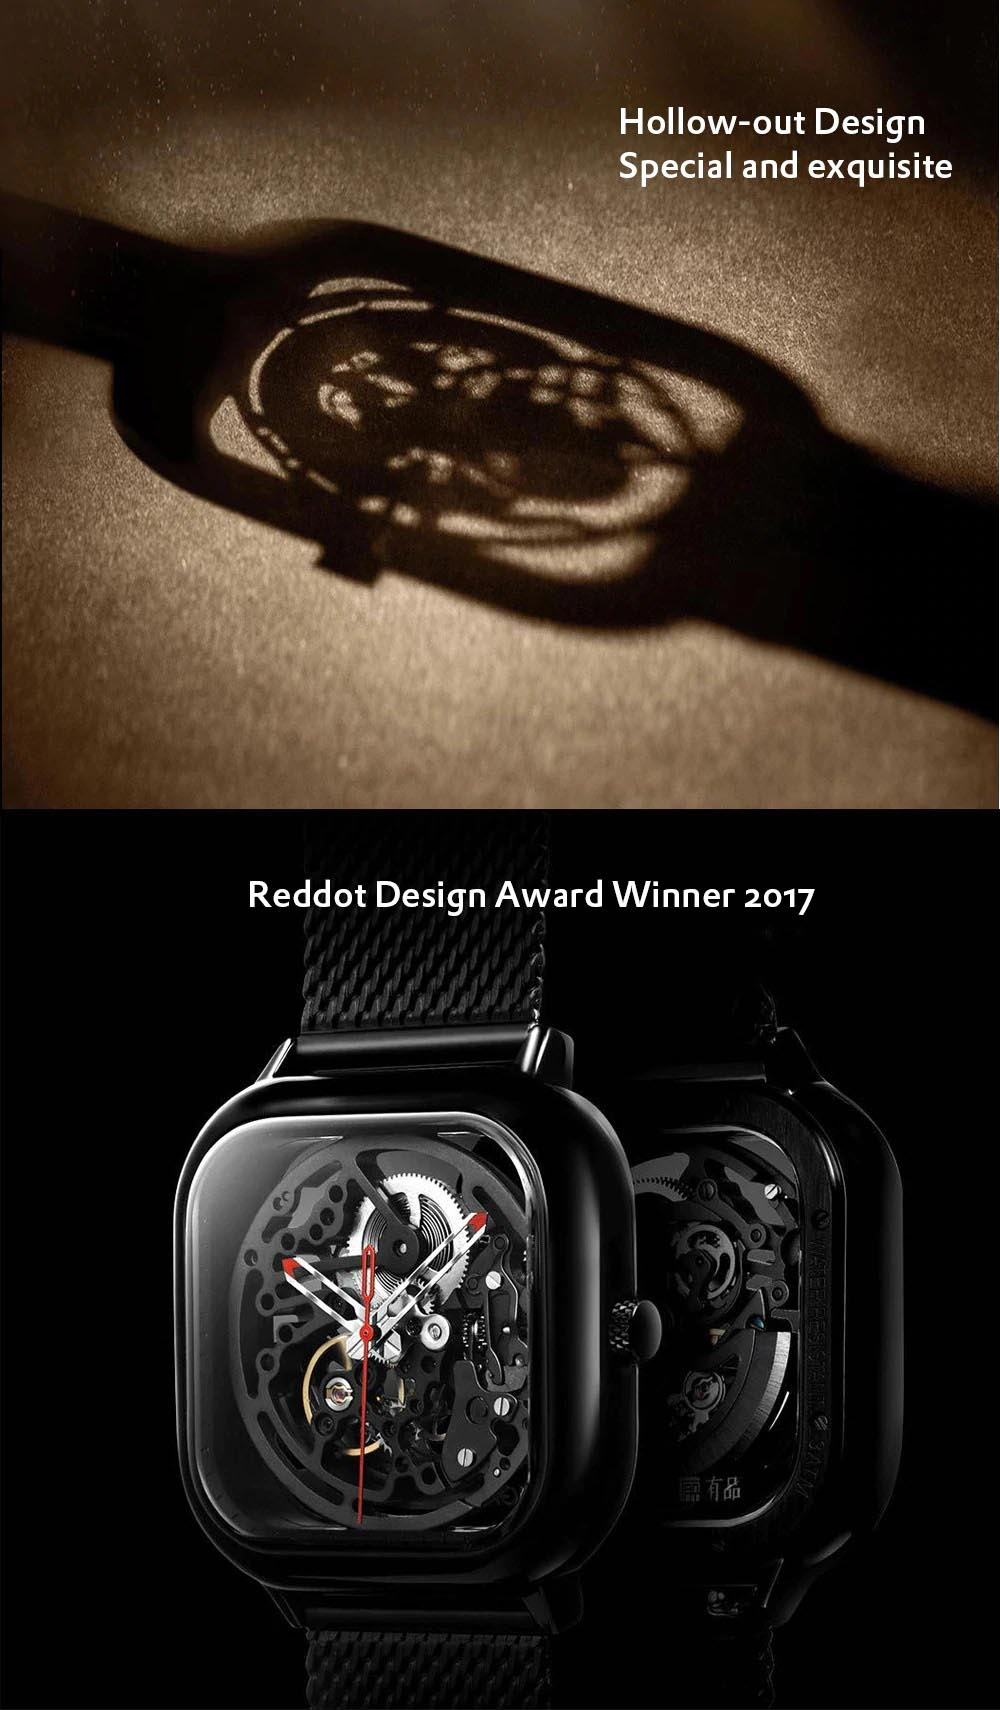 HOLLOW mechanical watch - reddot winner